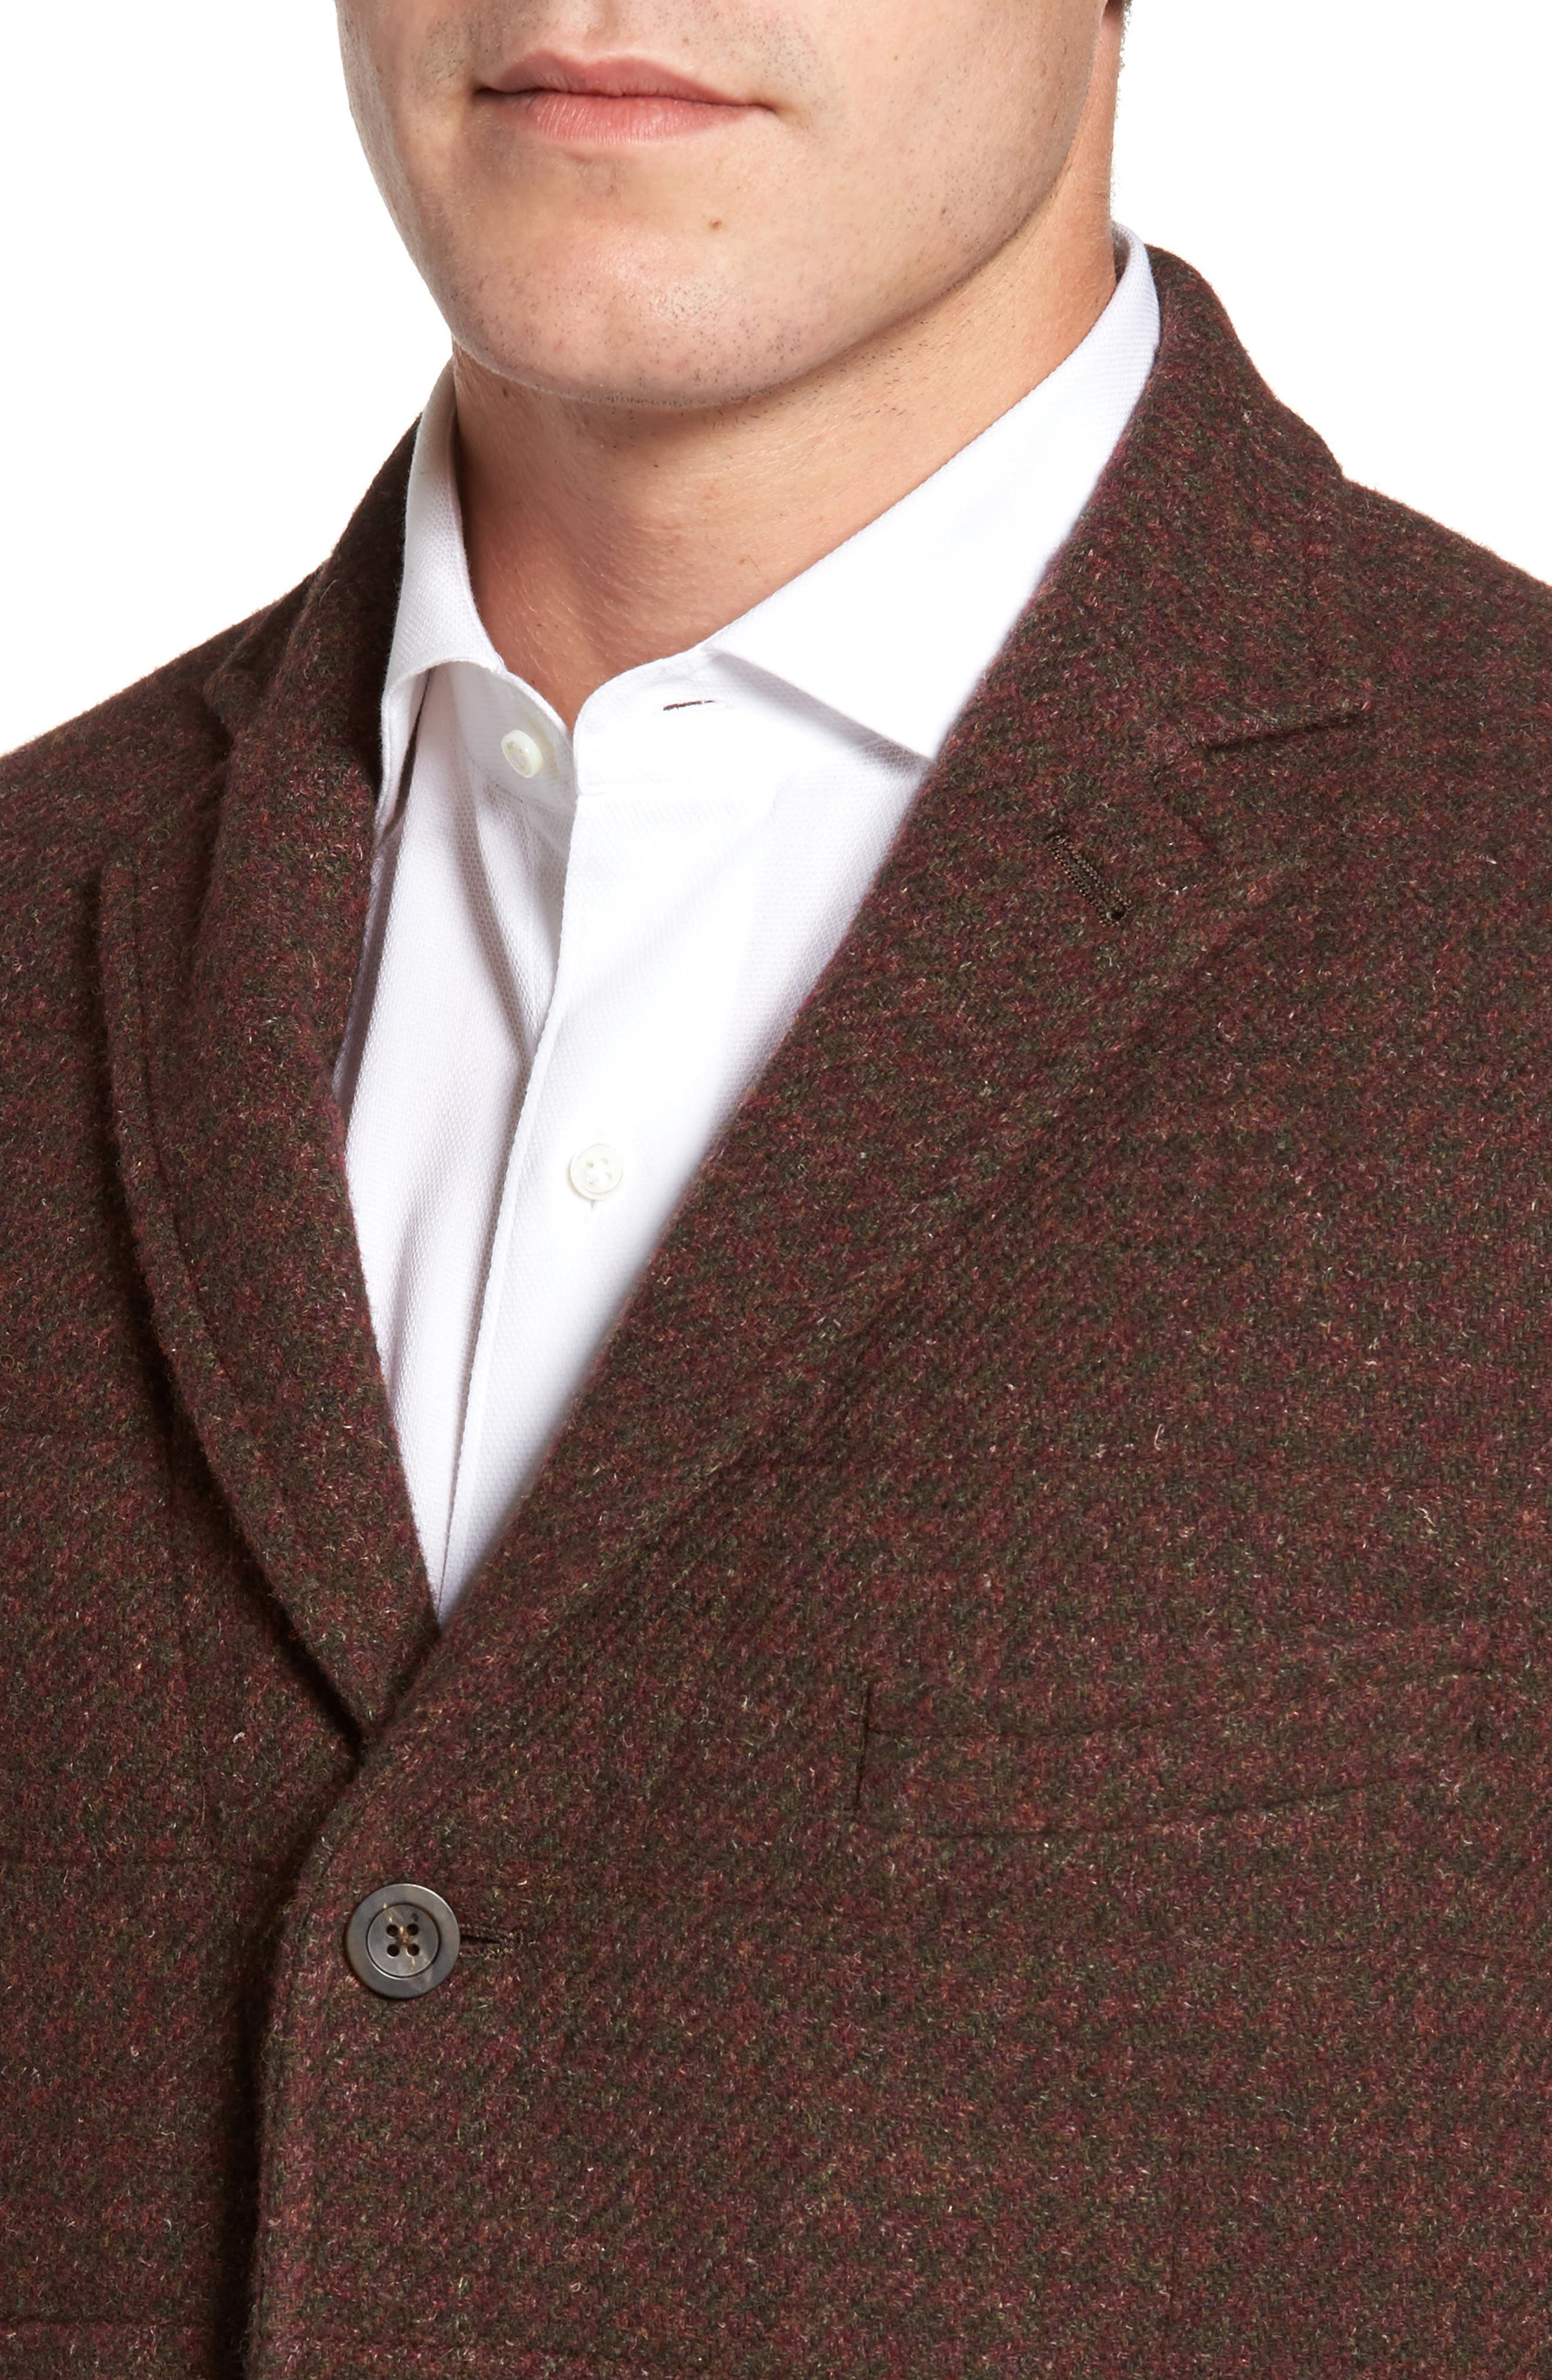 Quilted Wool Blend Hybrid Coat,                             Alternate thumbnail 4, color,                             220